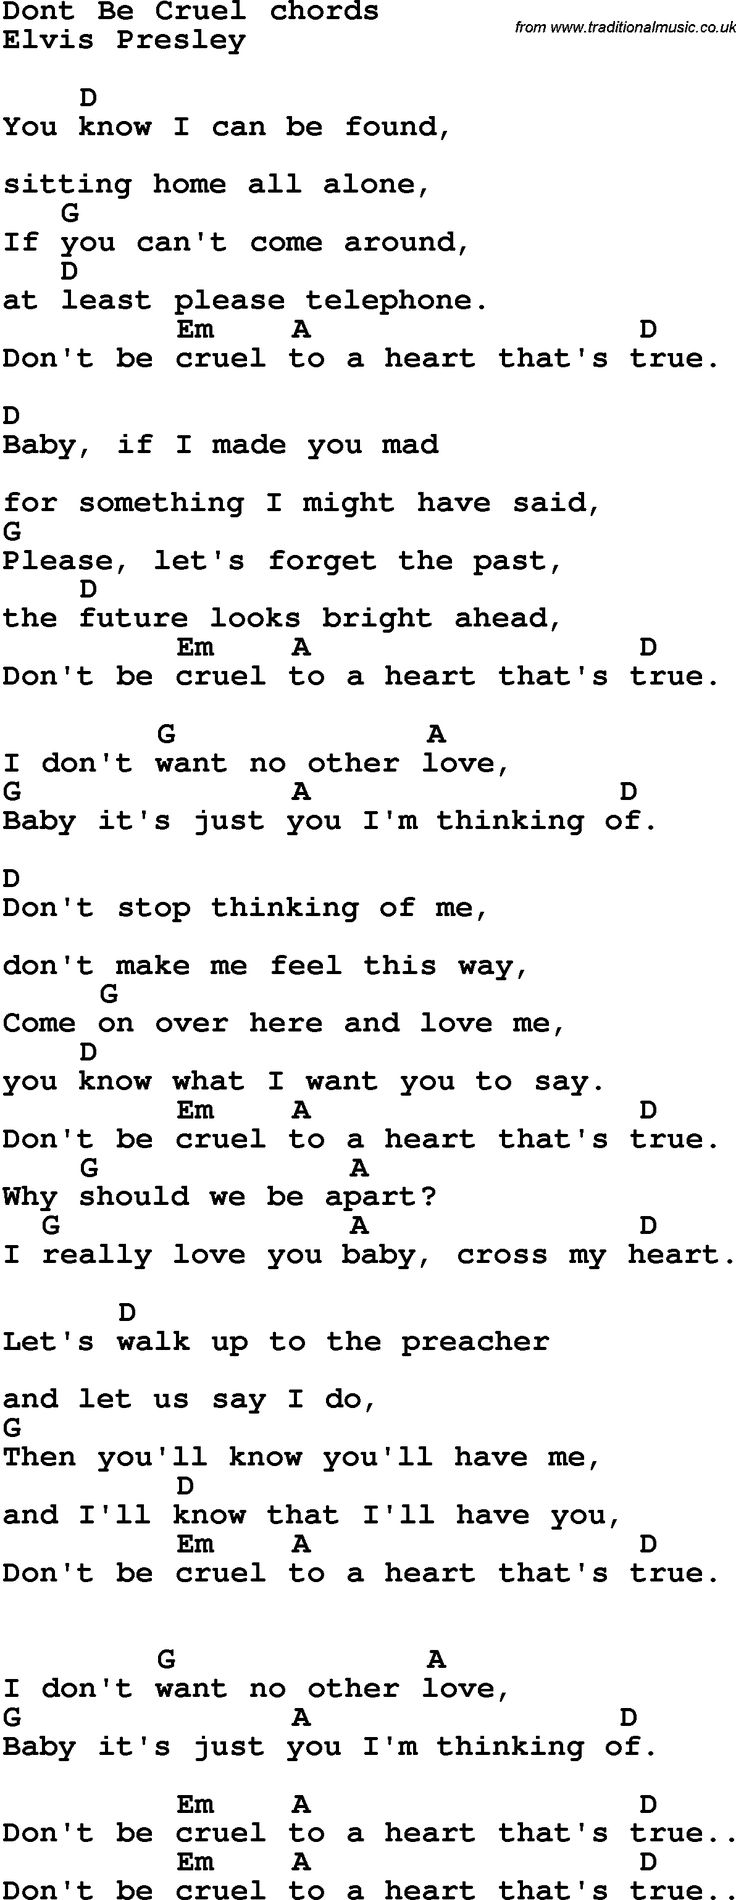 732 best lyrics images on pinterest music lyrics music notes song lyrics with guitar chords for dont be cruel hexwebz Gallery